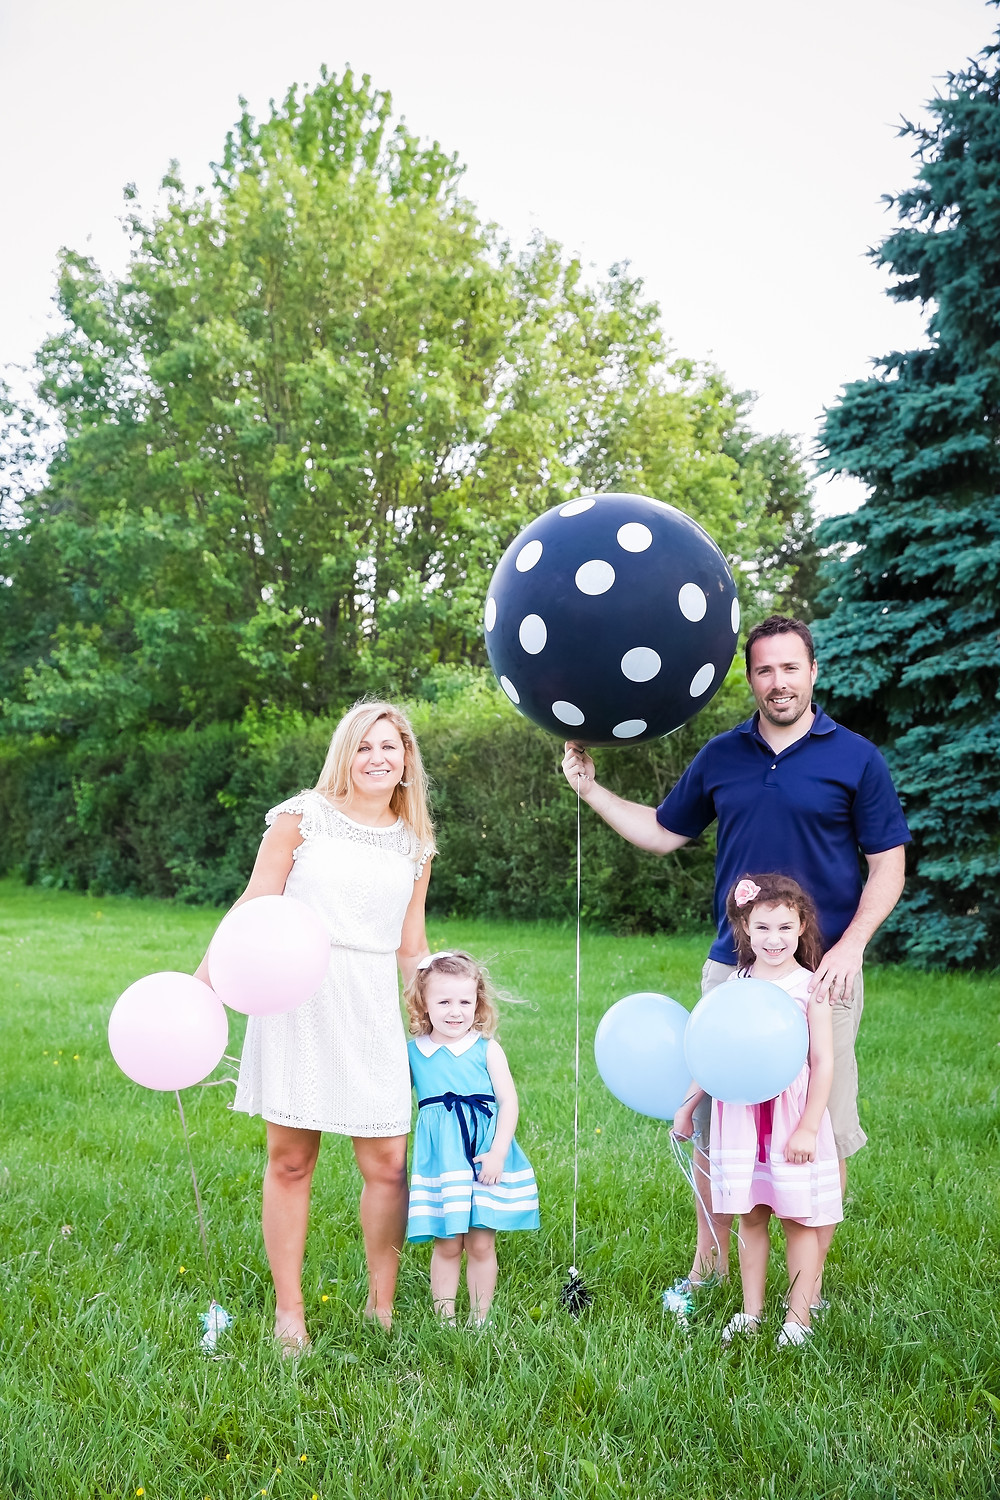 Gender Reveal with a balloon filled with confetti